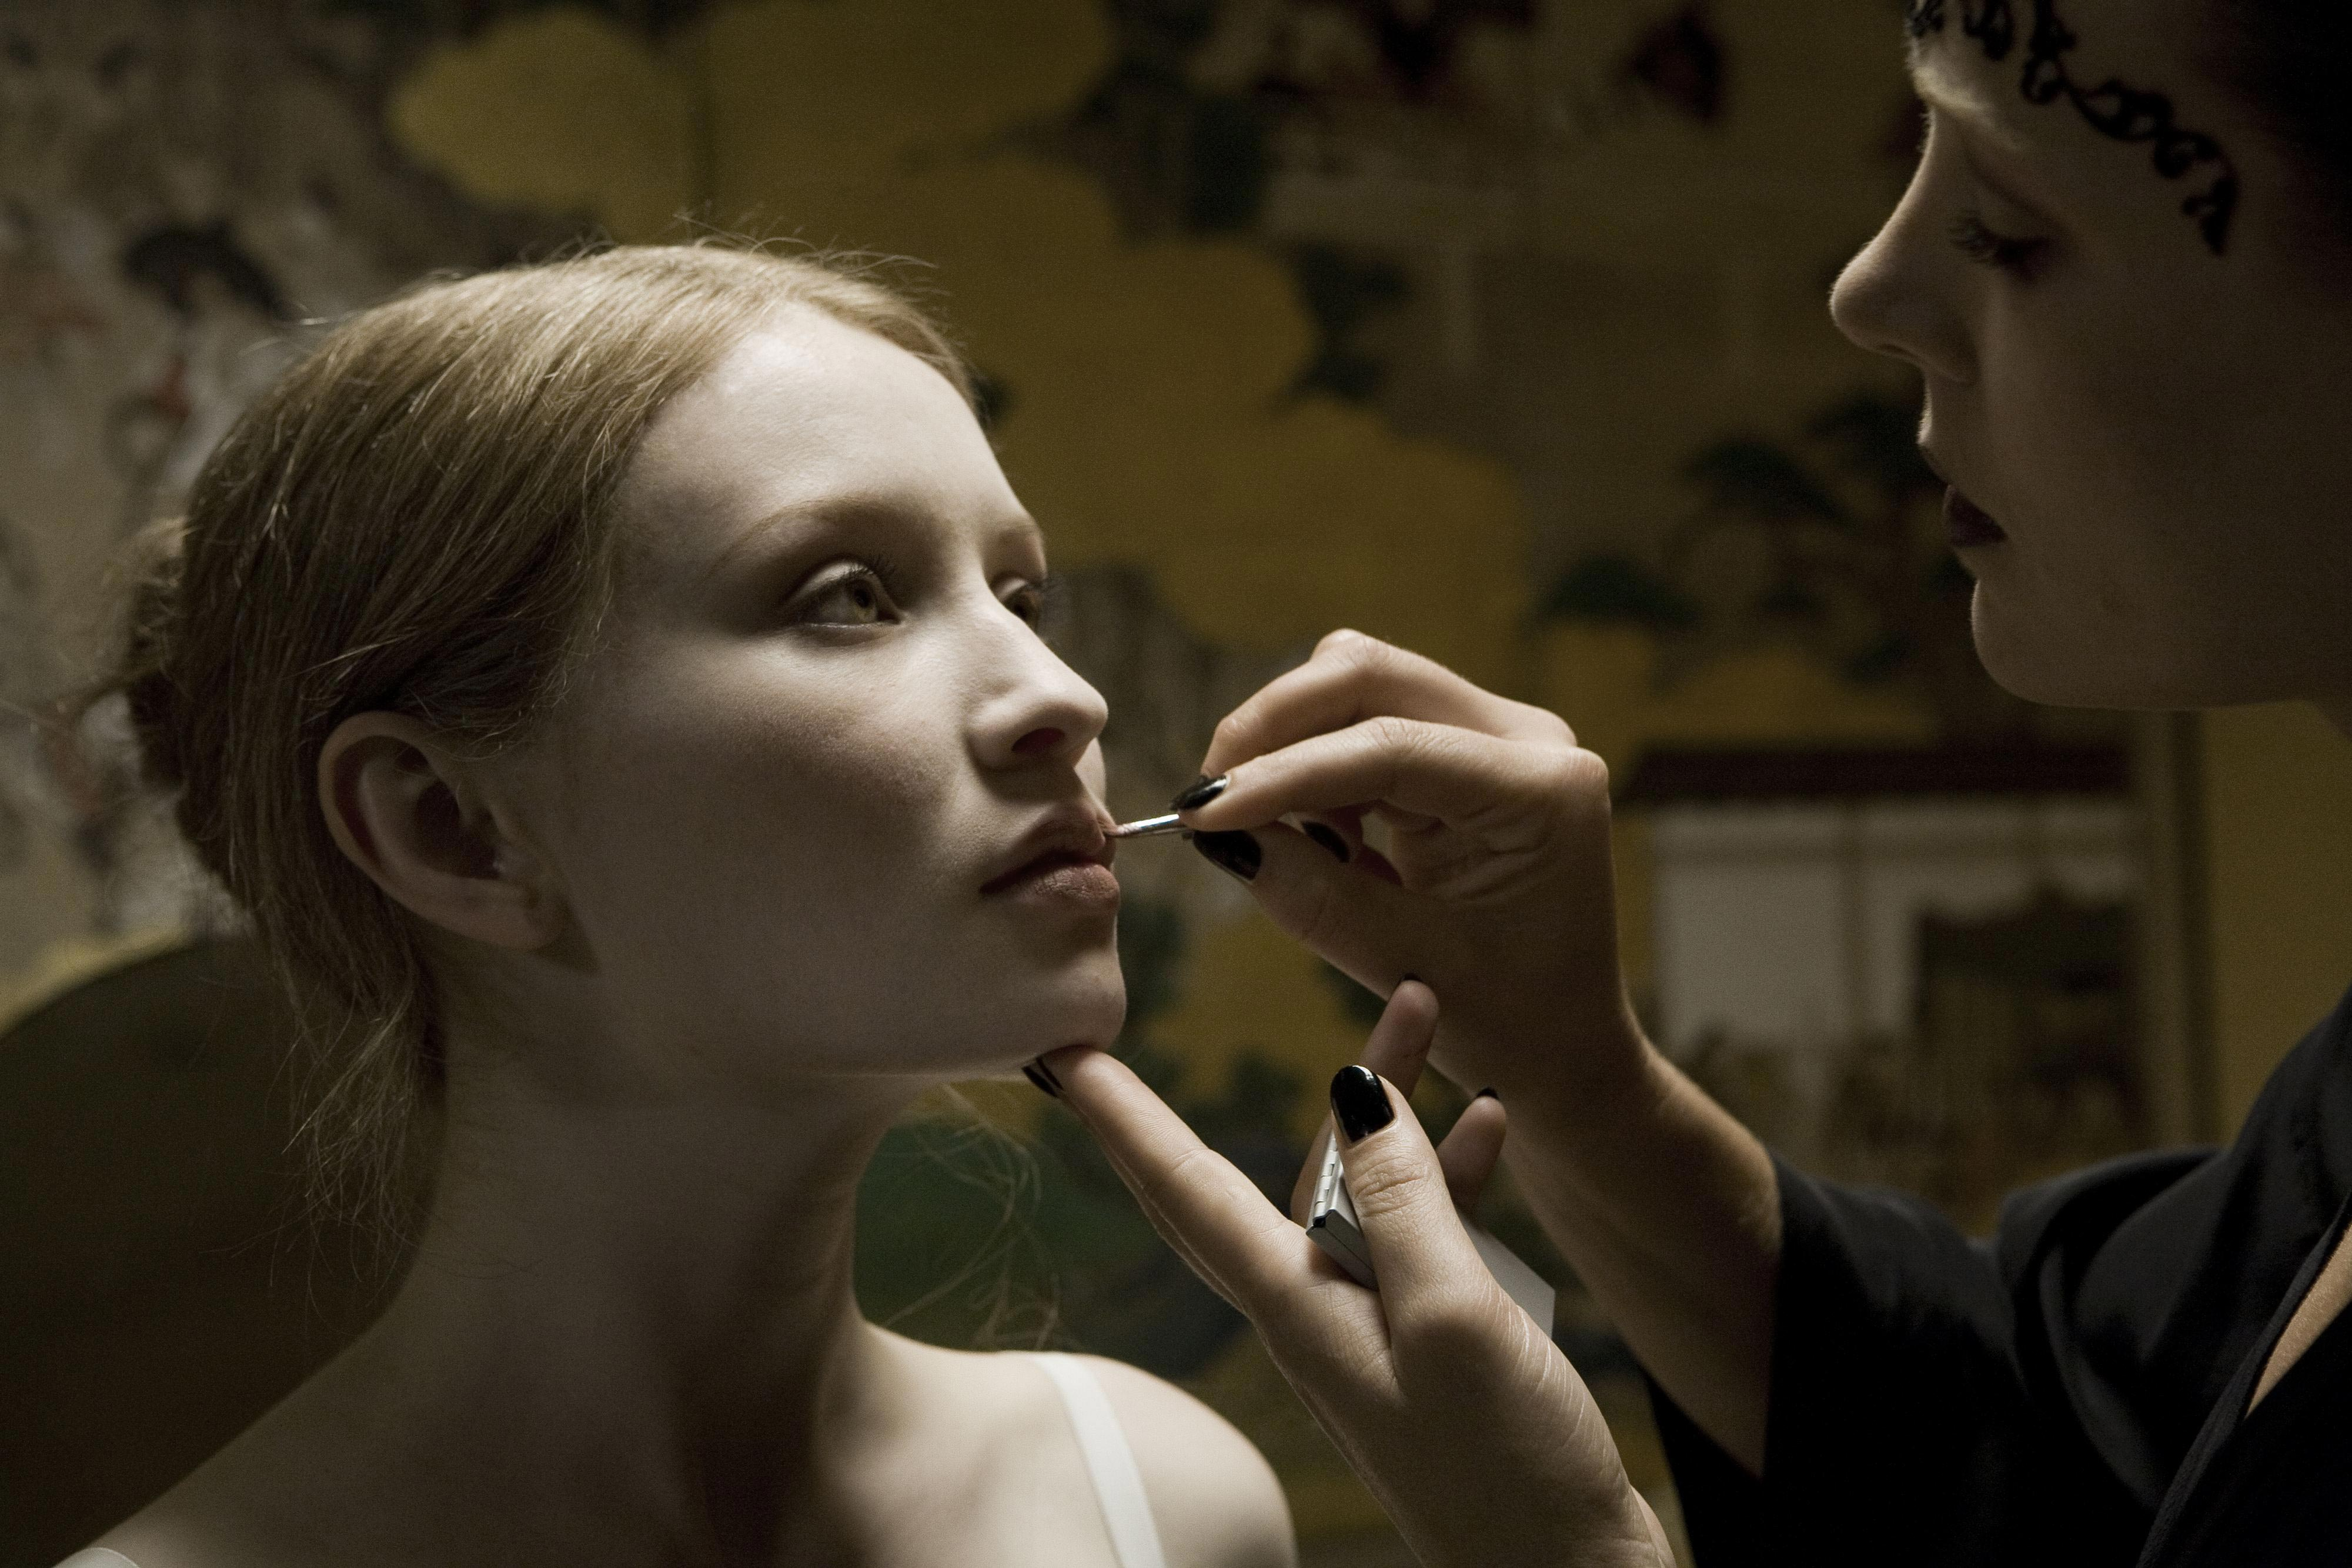 Theatrical Trailer for SLEEPING BEAUTY Starring Emily Browning